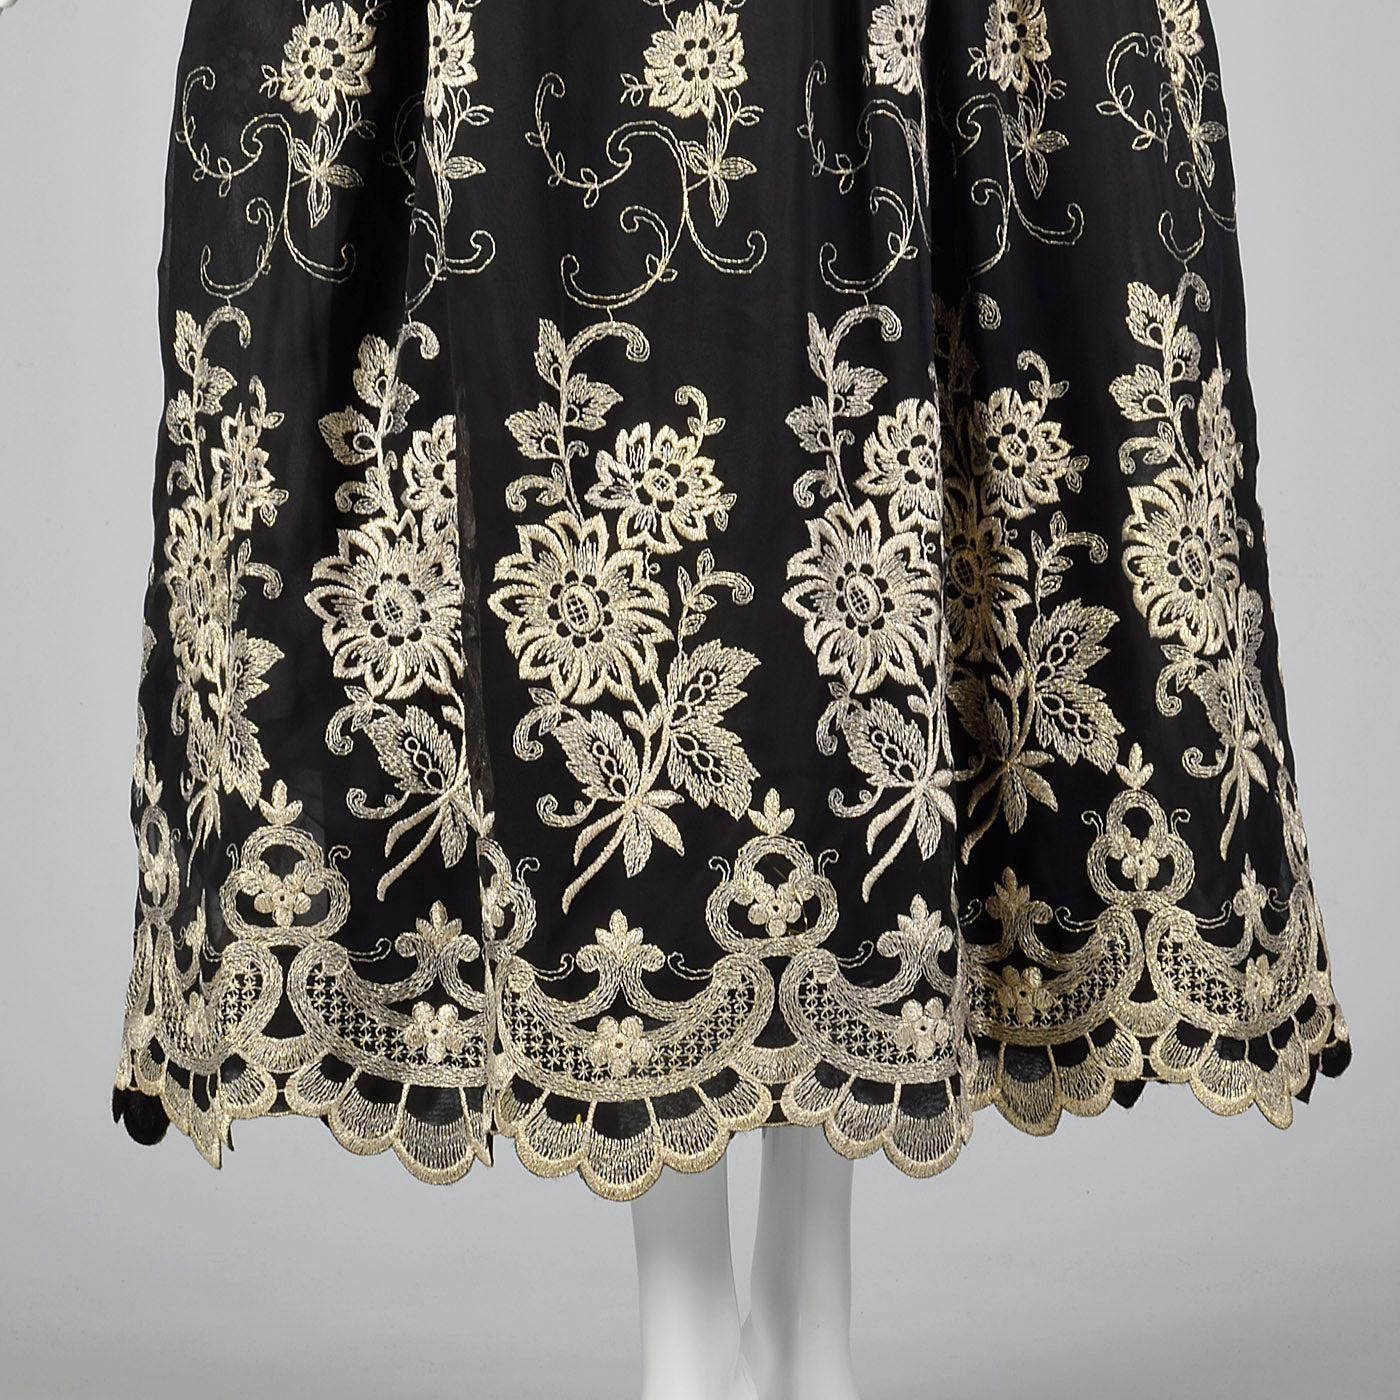 1980s Mr. Blackwell Evening Dress with Gold Embroidery